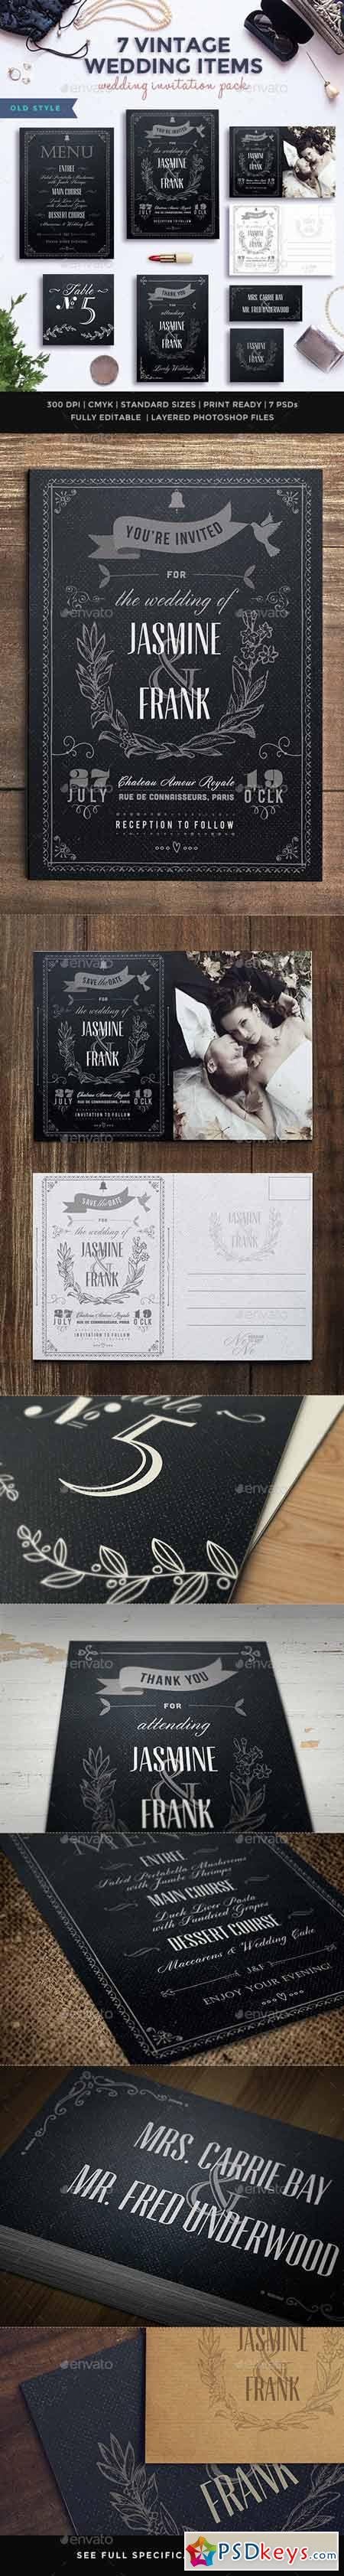 7 Vintage Items - Wedding Pack 10201277